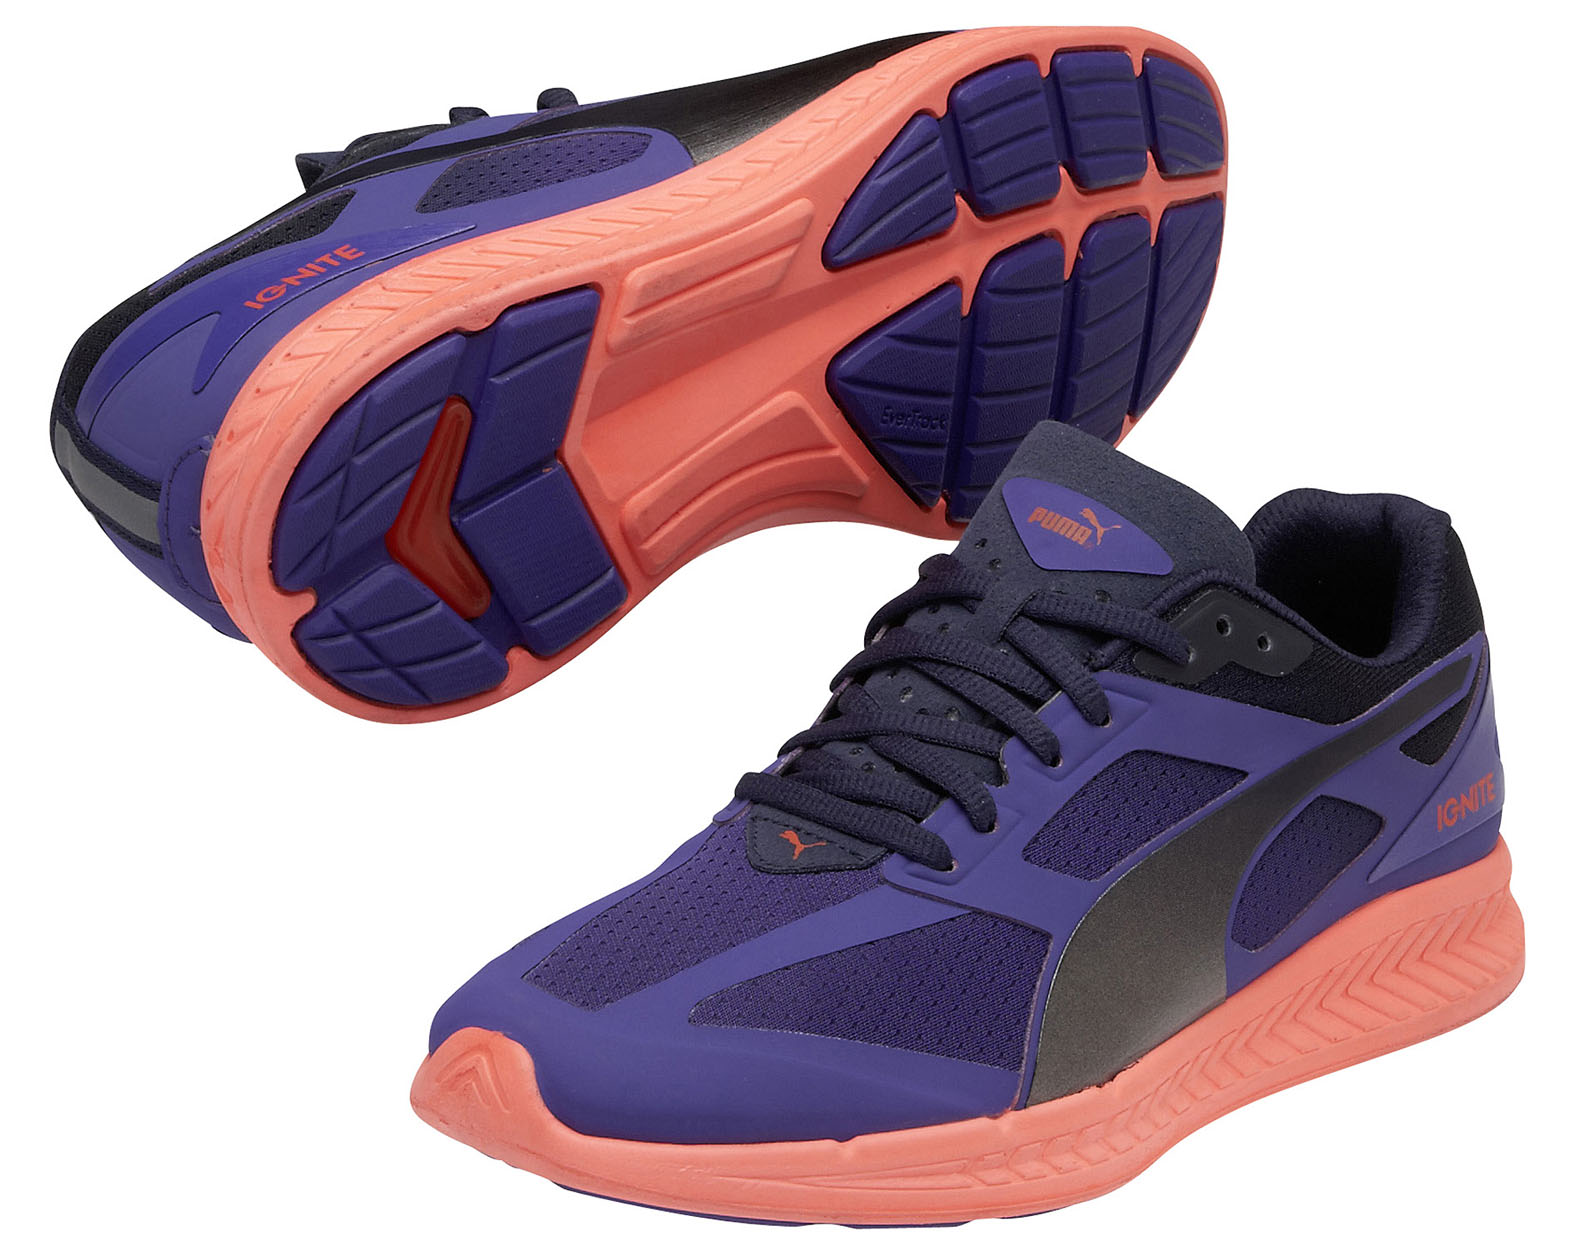 Released New Range Ignite Running Puma Brand Their E2DH9YWI